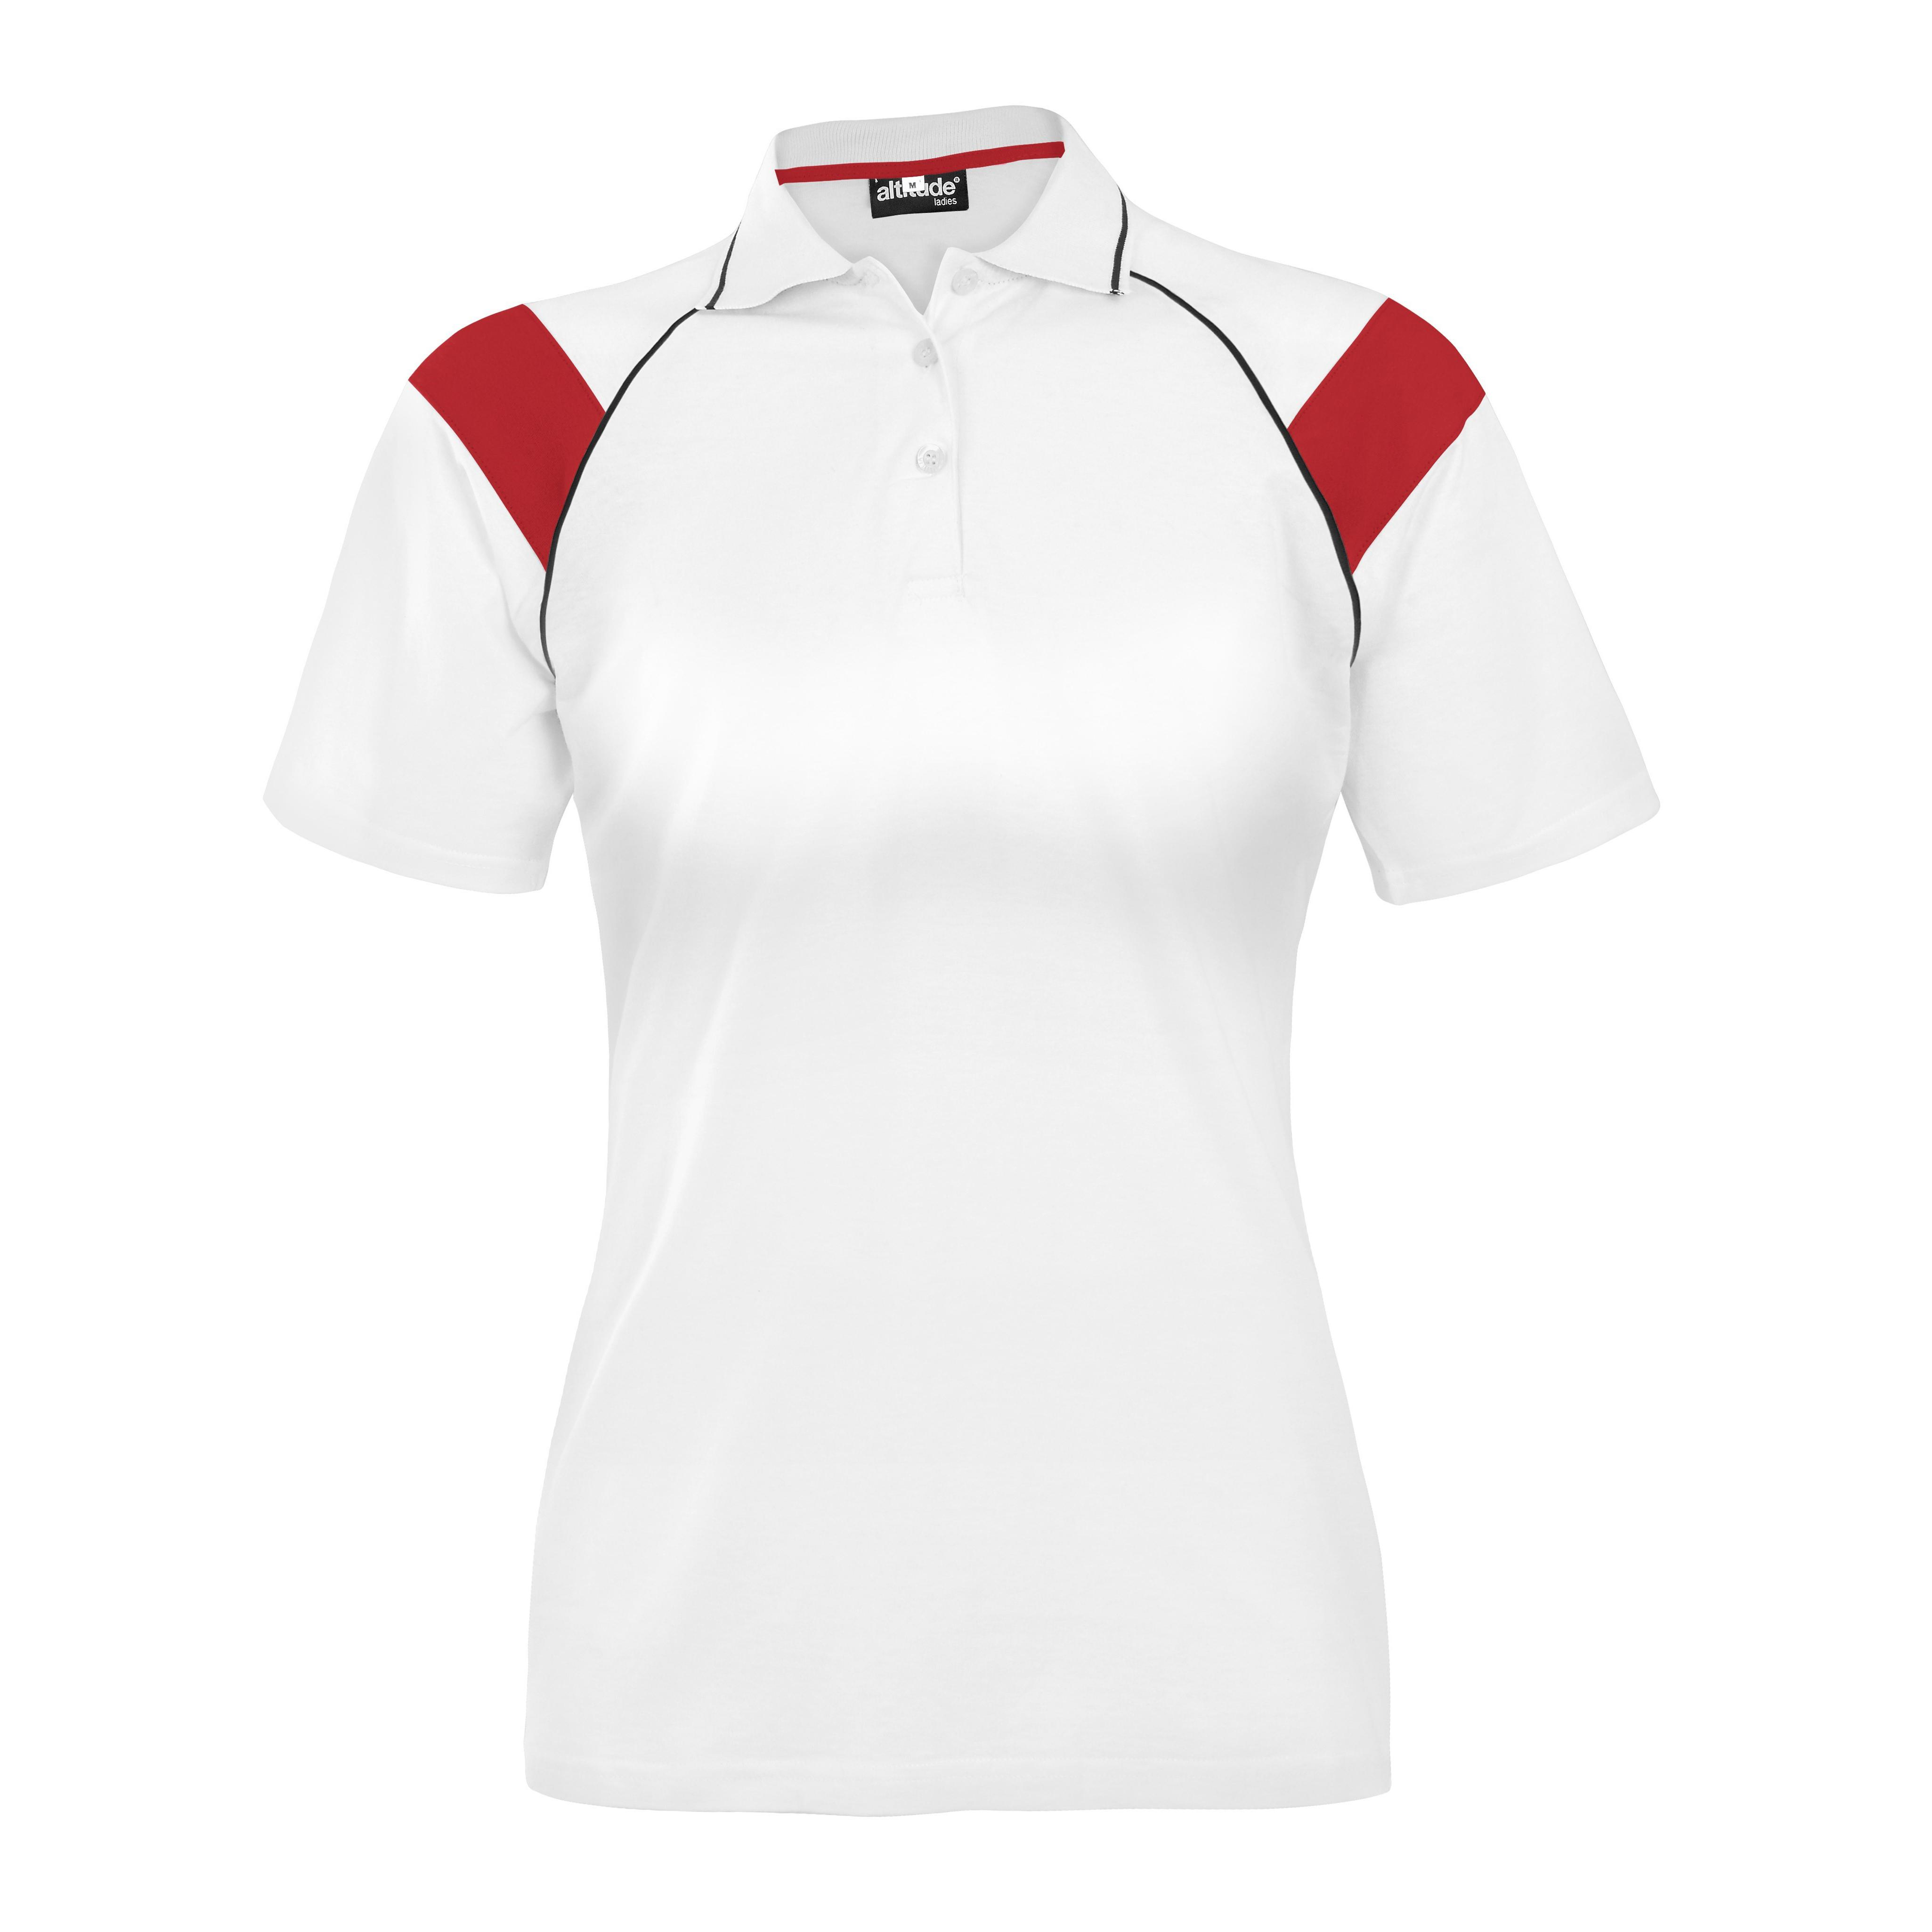 Ladies Score Golf Shirt White And Red Only